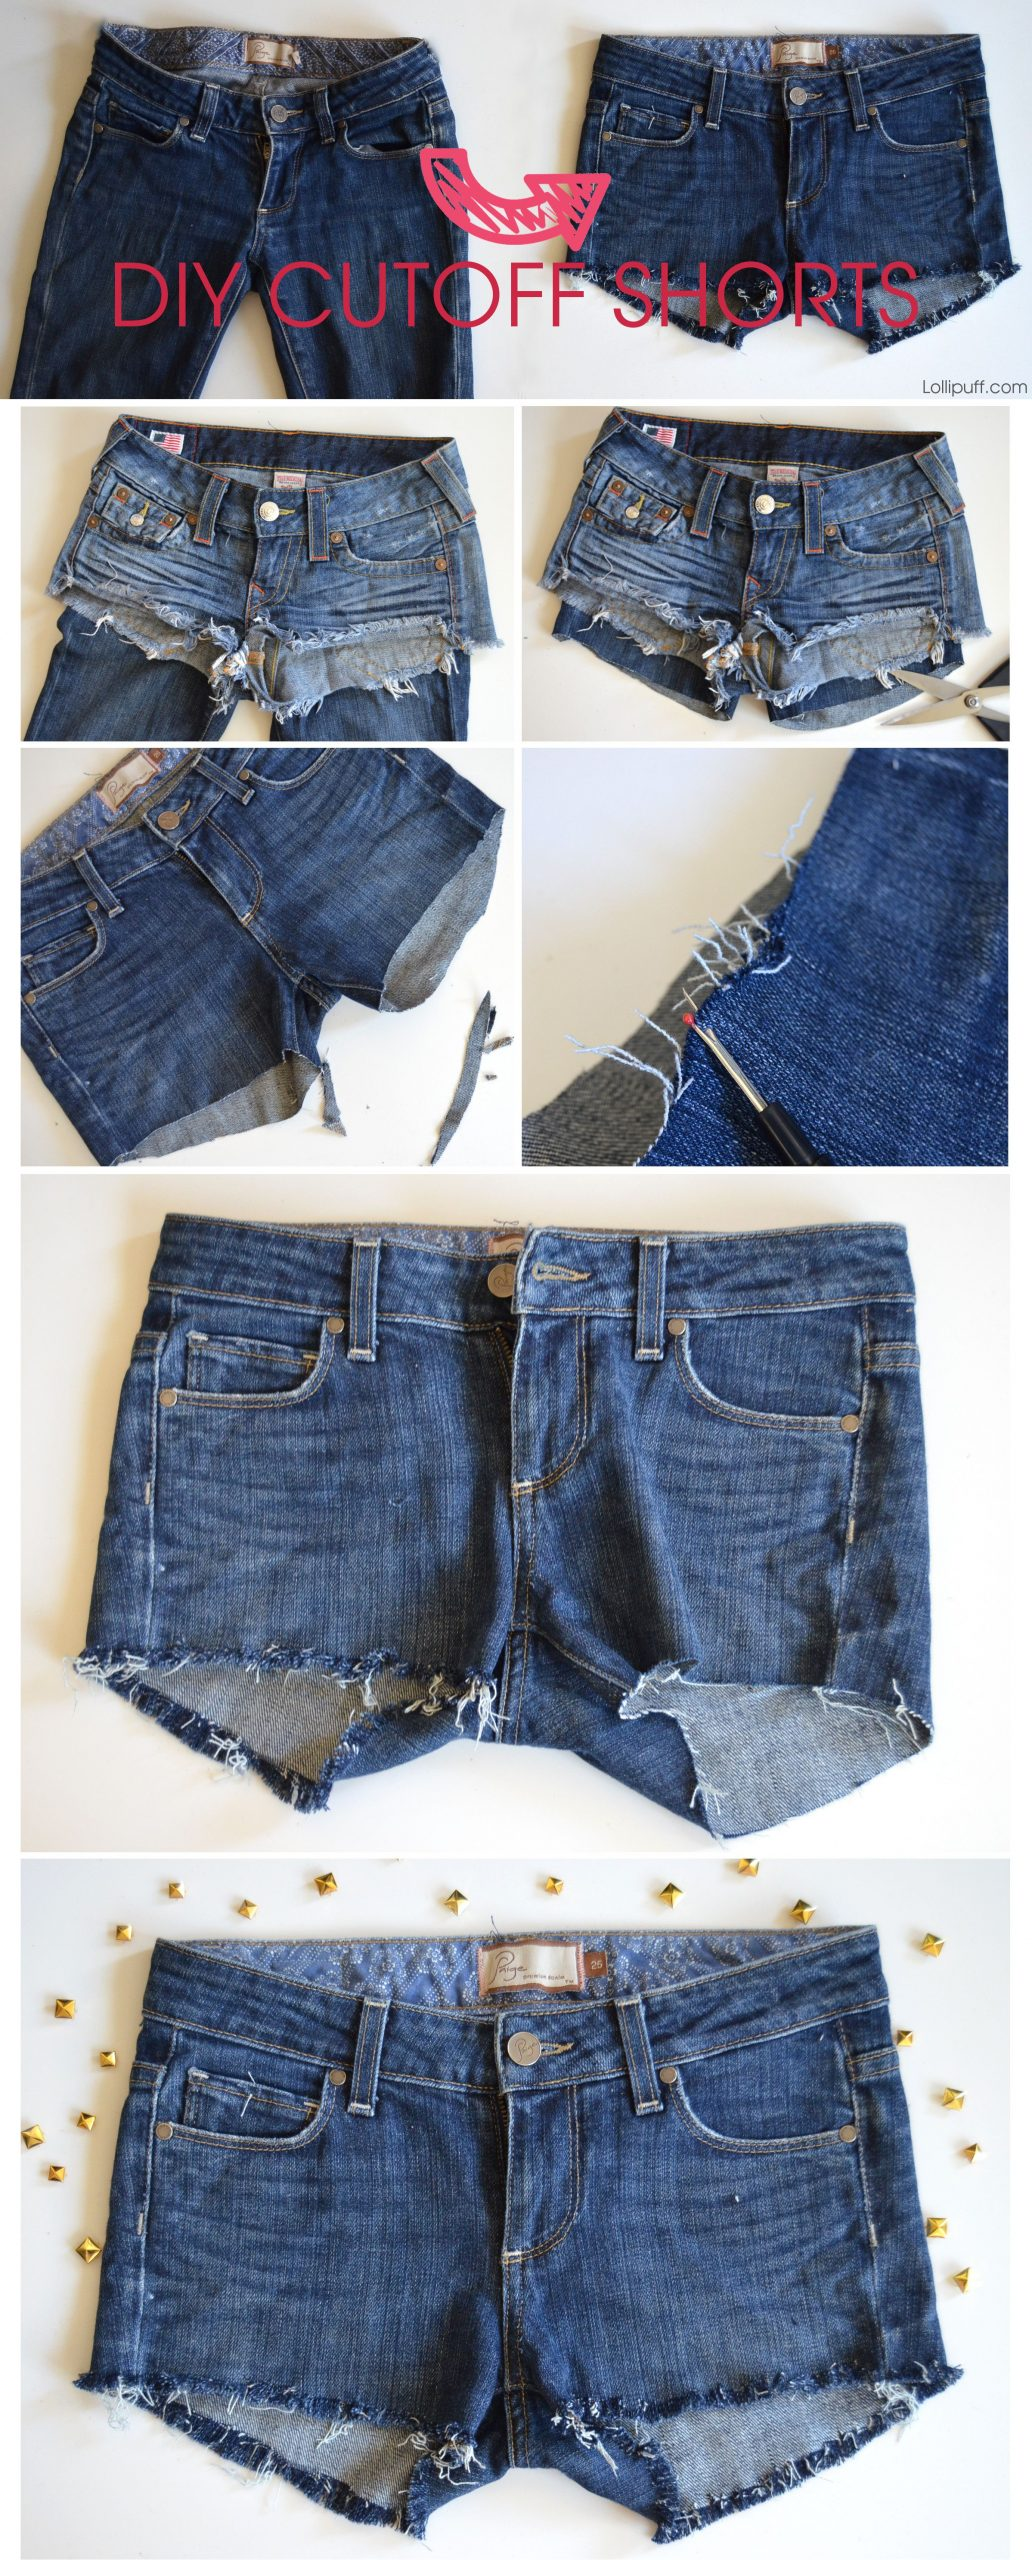 DIY cut-off shorts! We all have at least one pair of jeans that we haven't worn …